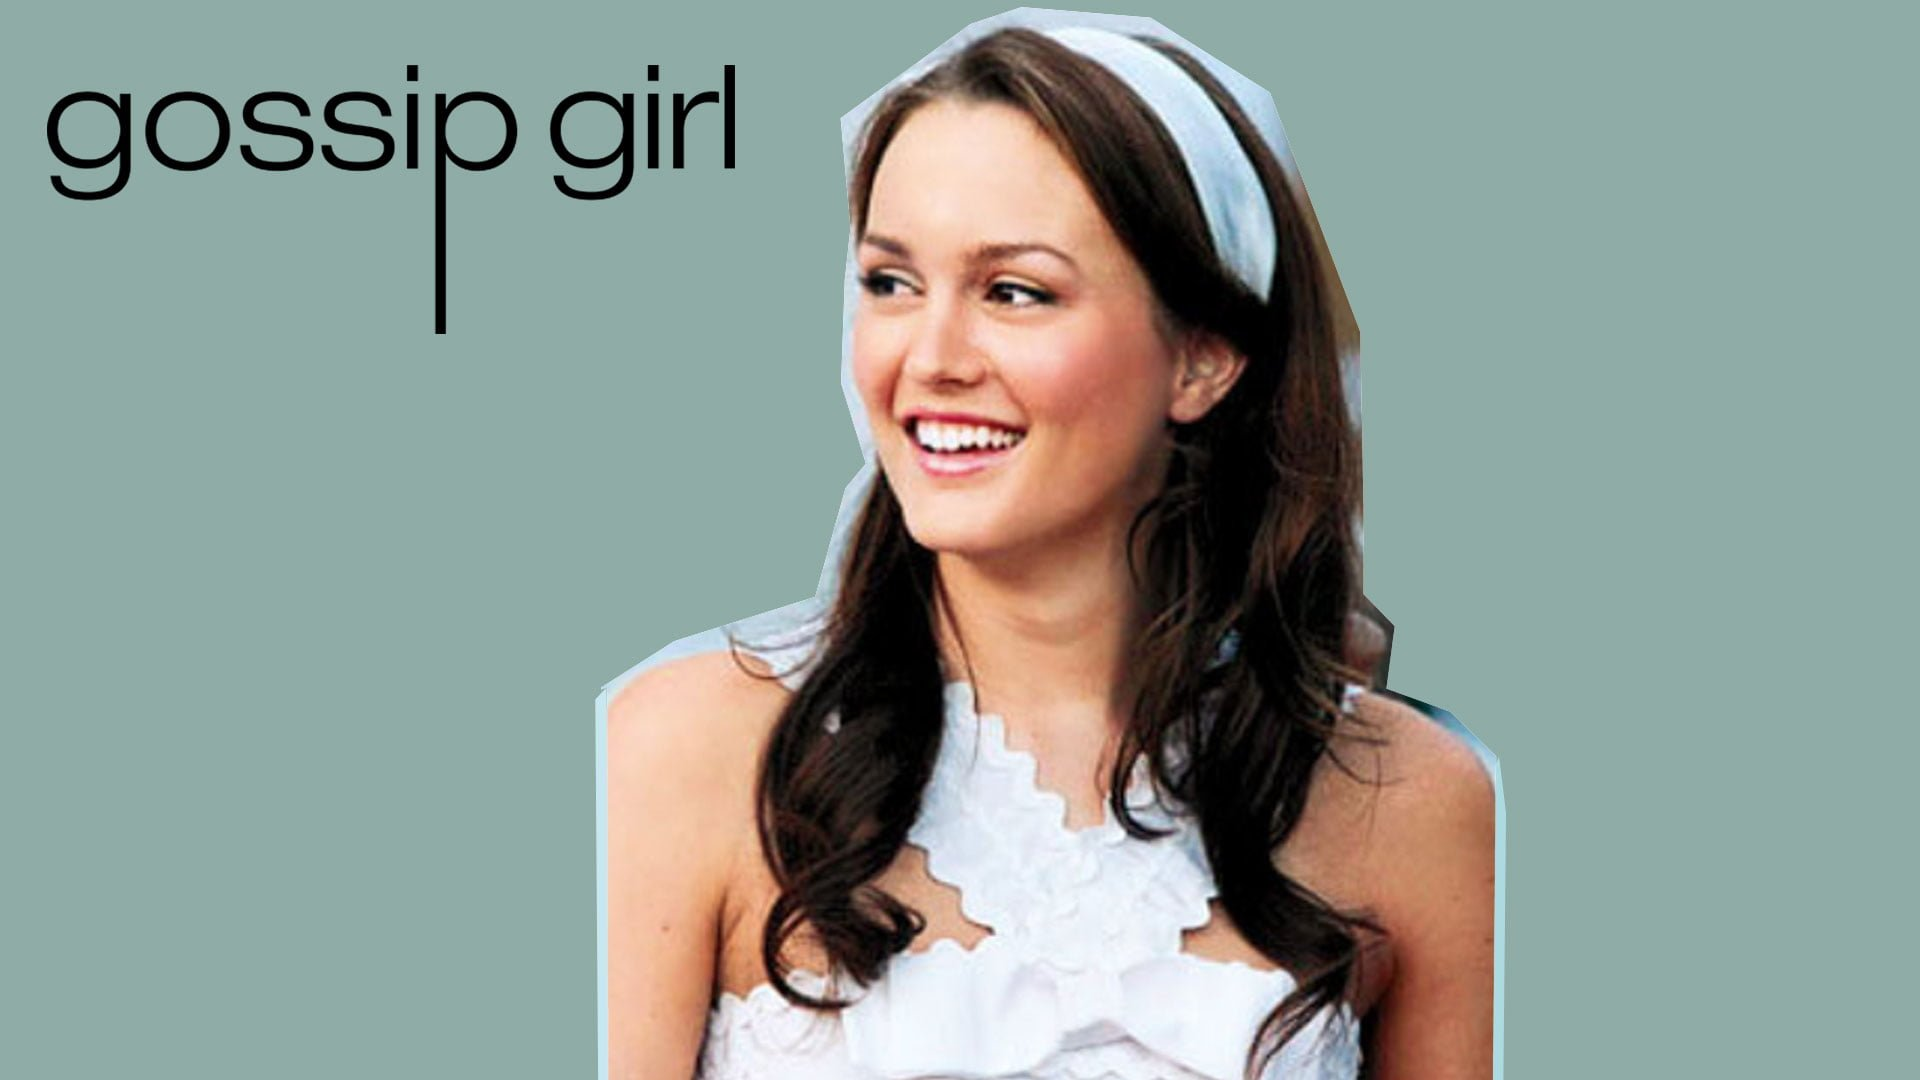 Blair Waldorf from Gossip Girl